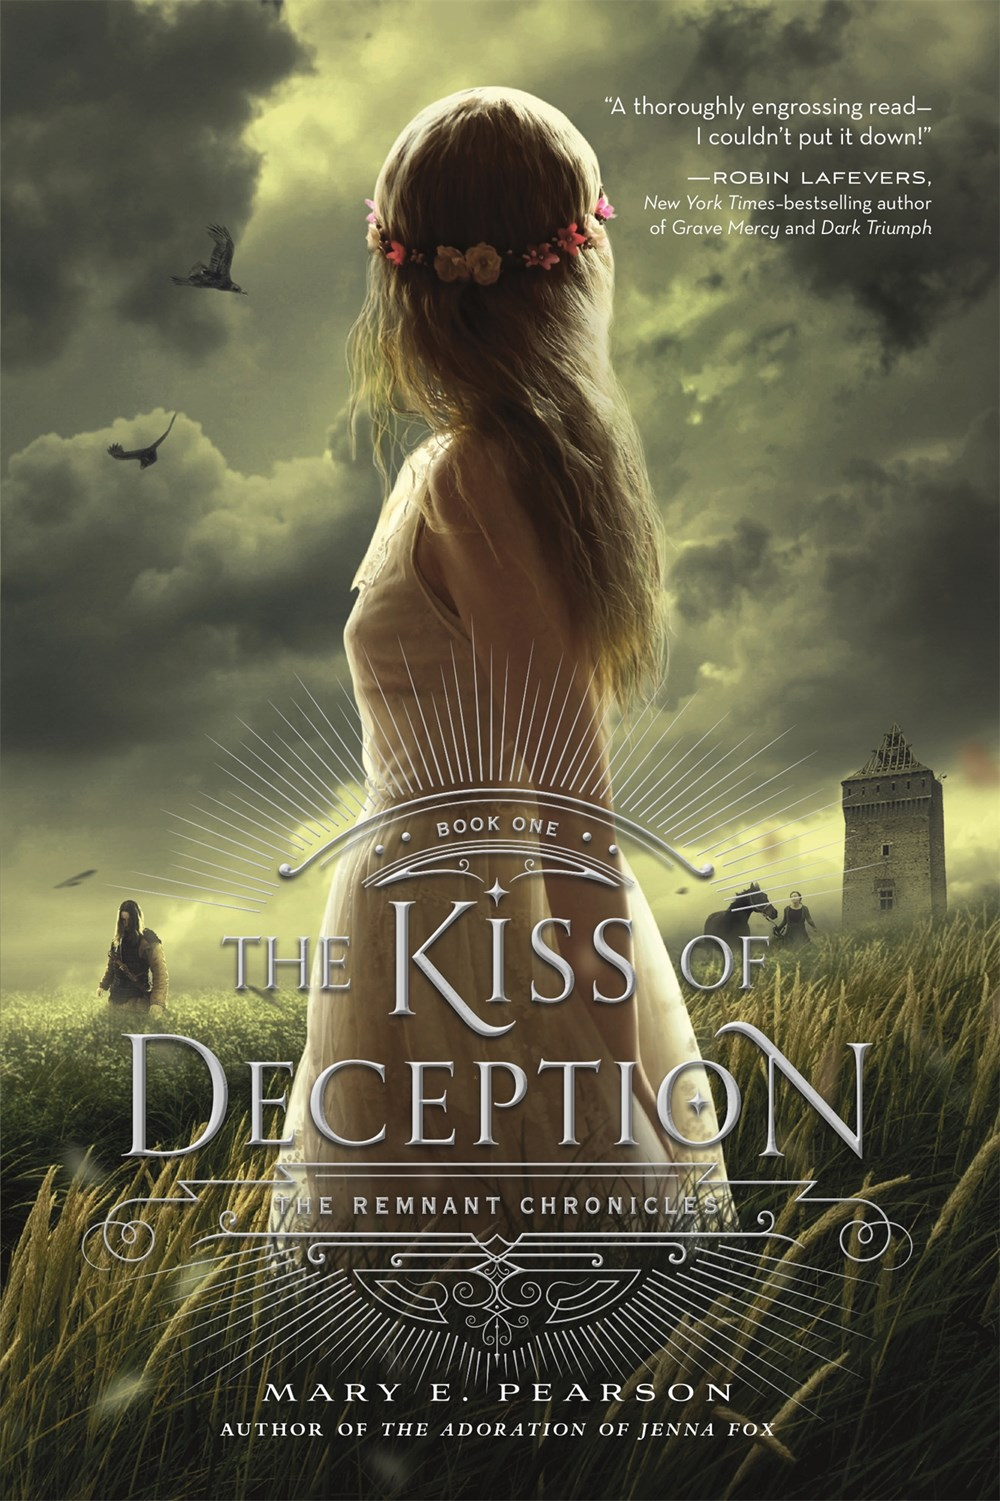 The Kiss of Deception - The Remnant Chronicles 01 - Mary E. Pearson